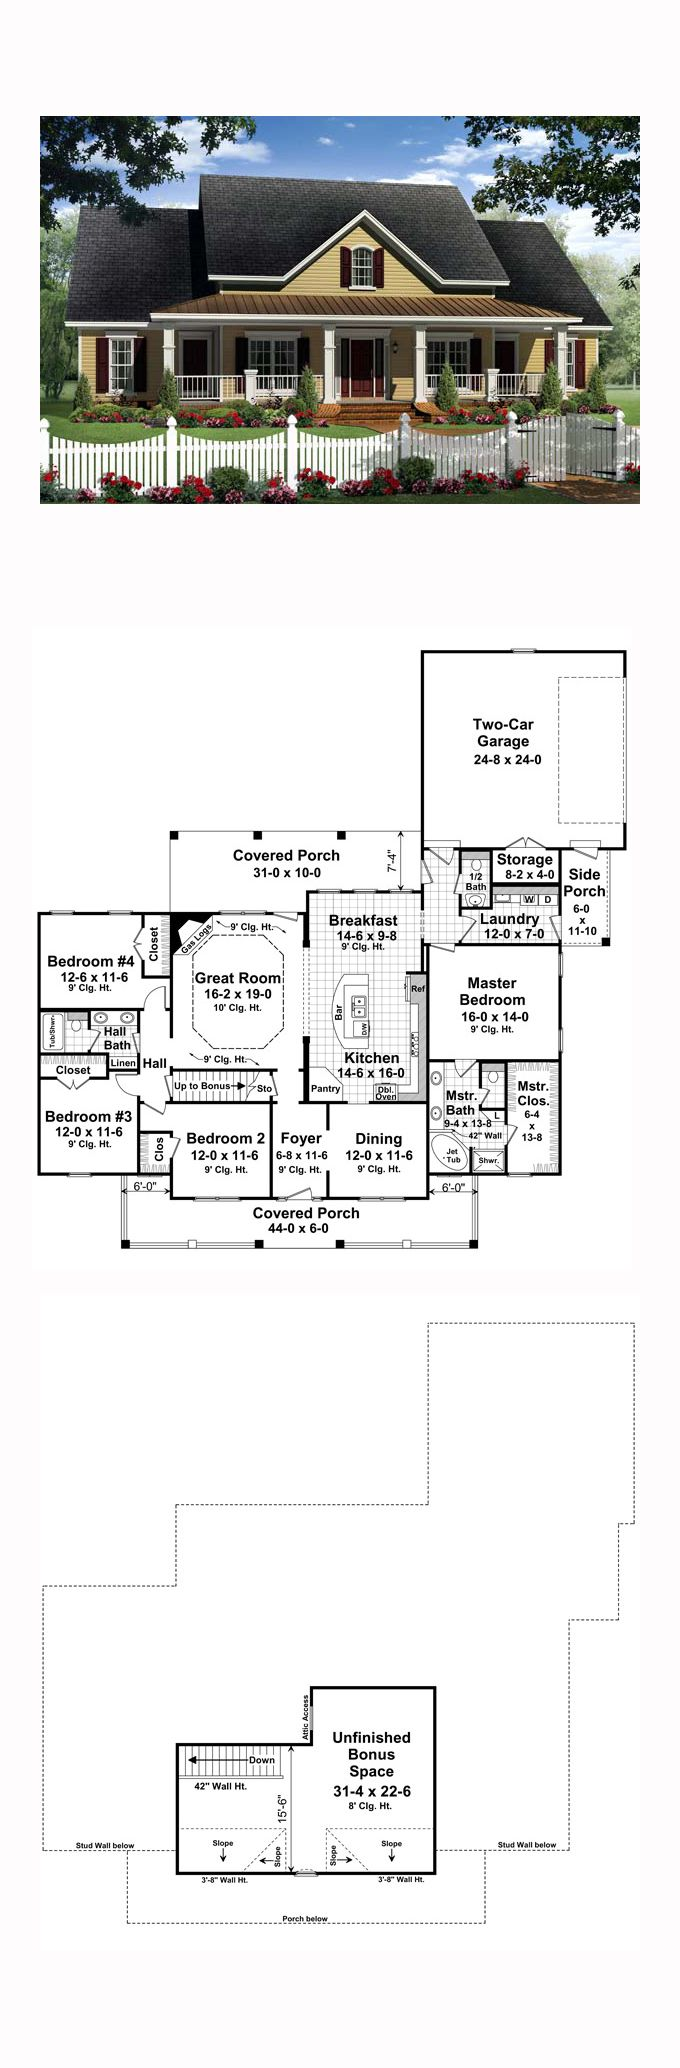 Traditional House Plan 59214   Total Living Area: 2336 sq. ft., 4 bedrooms and 2.5 bathrooms.The large great room features a gas log fireplace, trayed ceilings, and provides a perfect place to entertain guests. The well-equipped kitchen features a raised